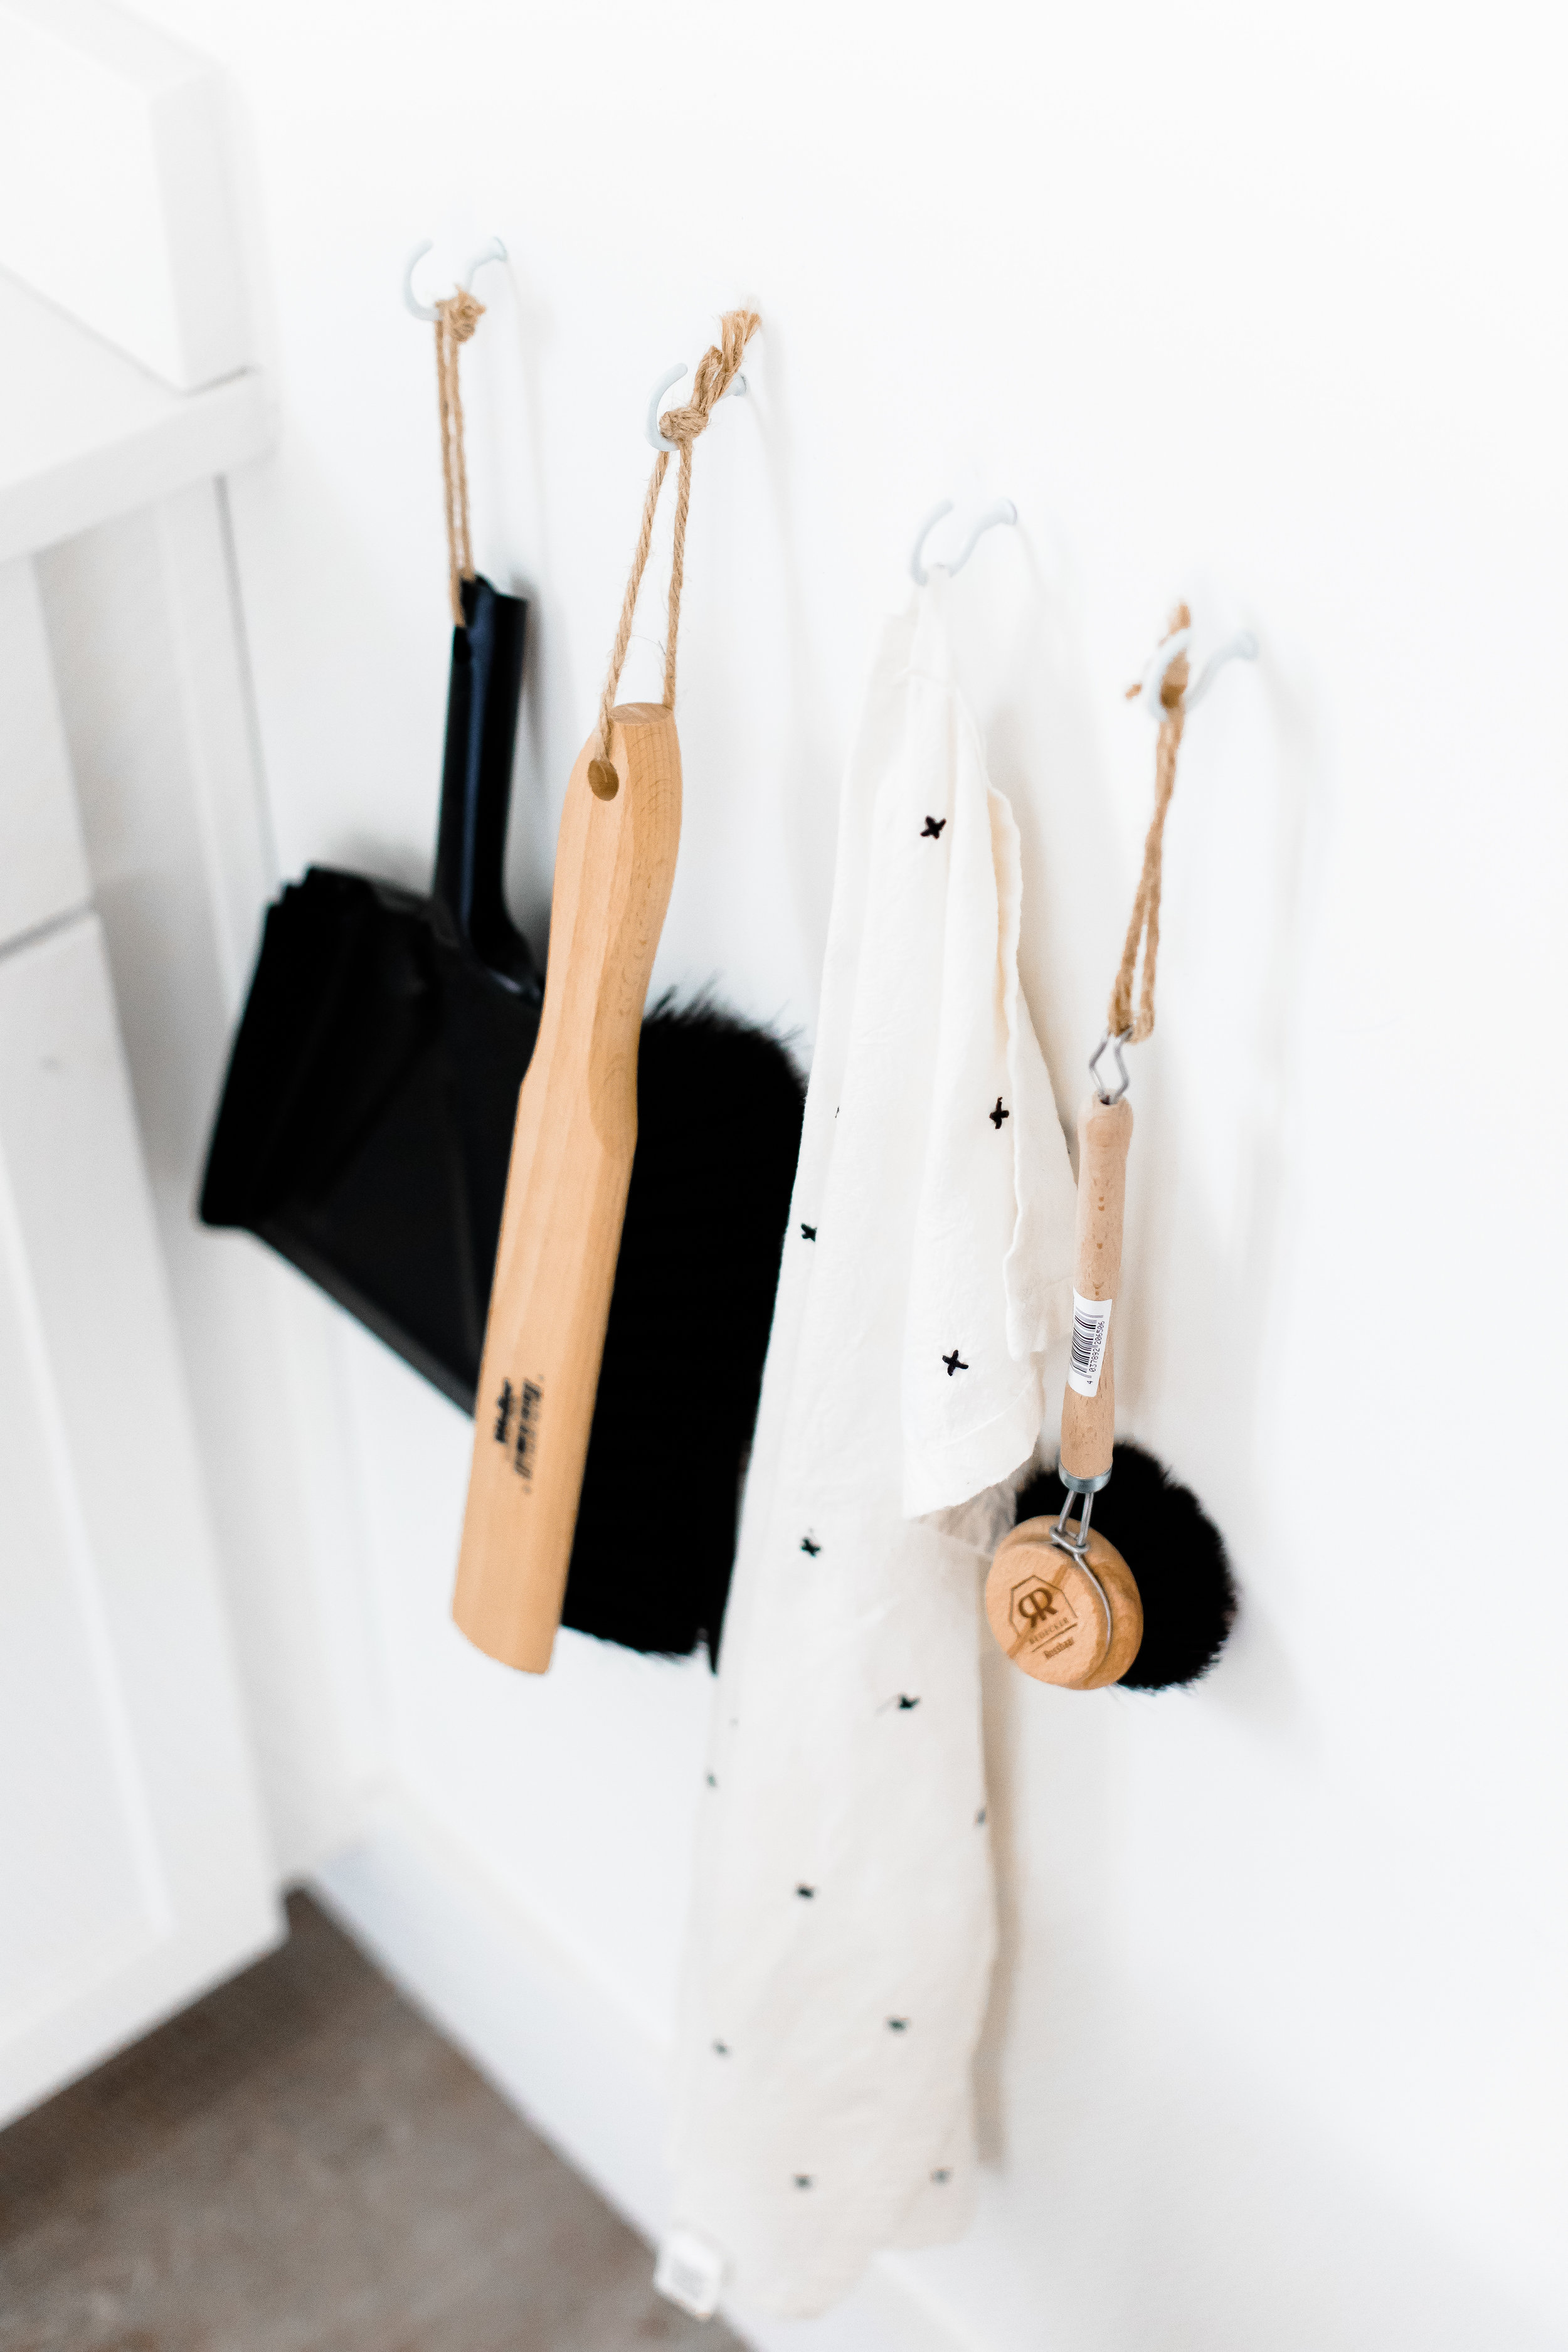 An organized pantry closet with a rag, broom and dust pan.